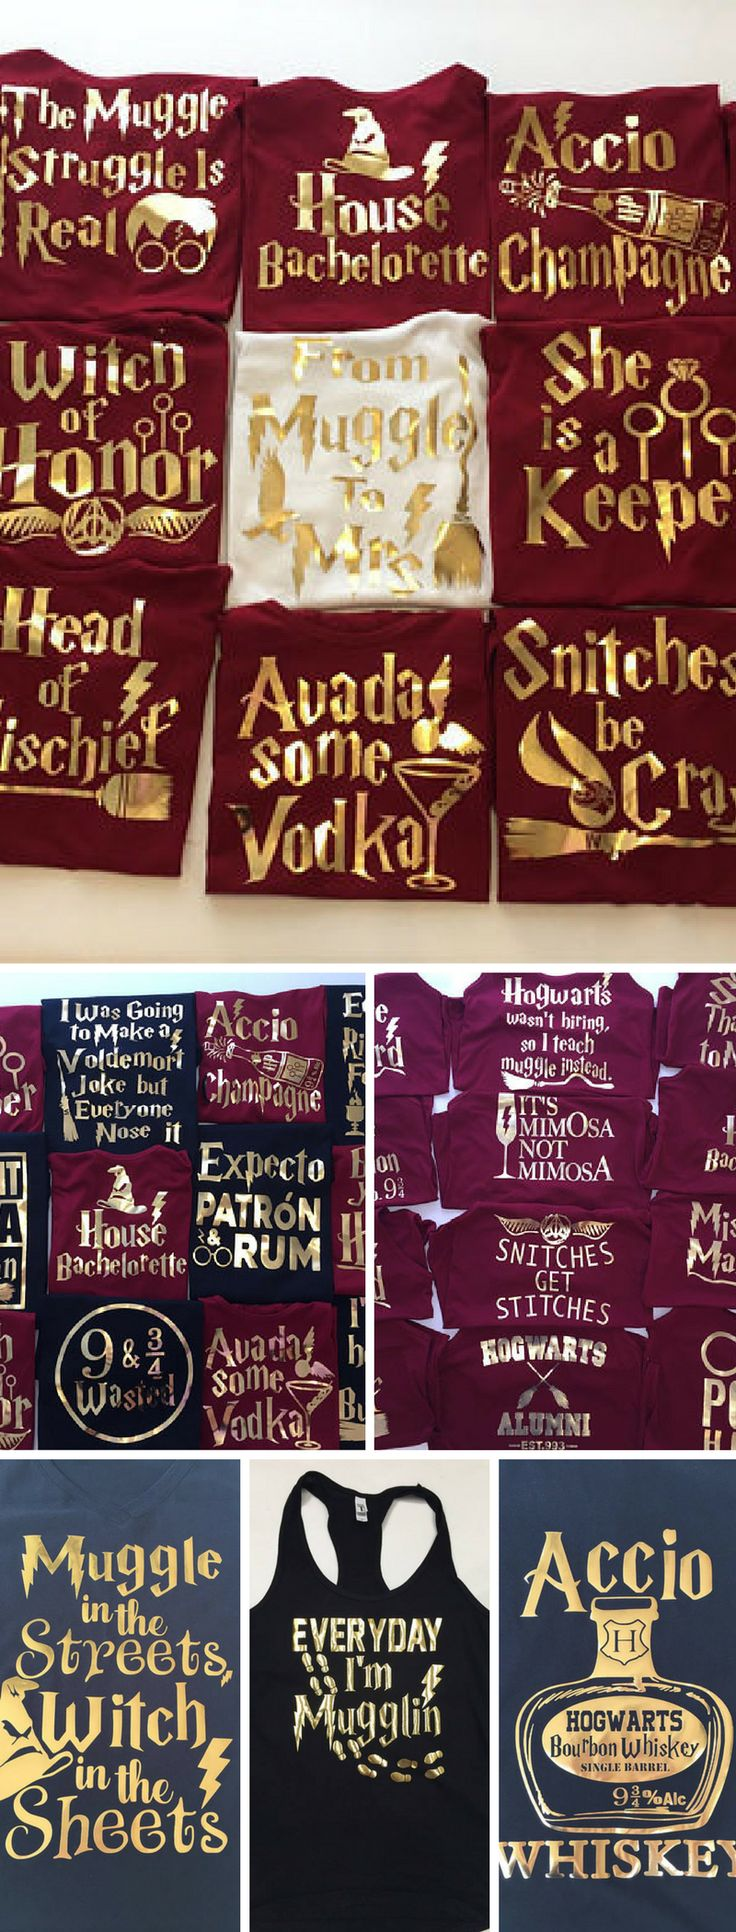 Over 30 choices of Funny Harry Potter themed t-shirts and tank tops. Love ALL of them! Perfect for gifts for for friends and family or even bachelor and bachelorette parties. #HarryPotter #Bachelorette #GiftsForHer #GiftsForHim #affiliate #Christmasgifts